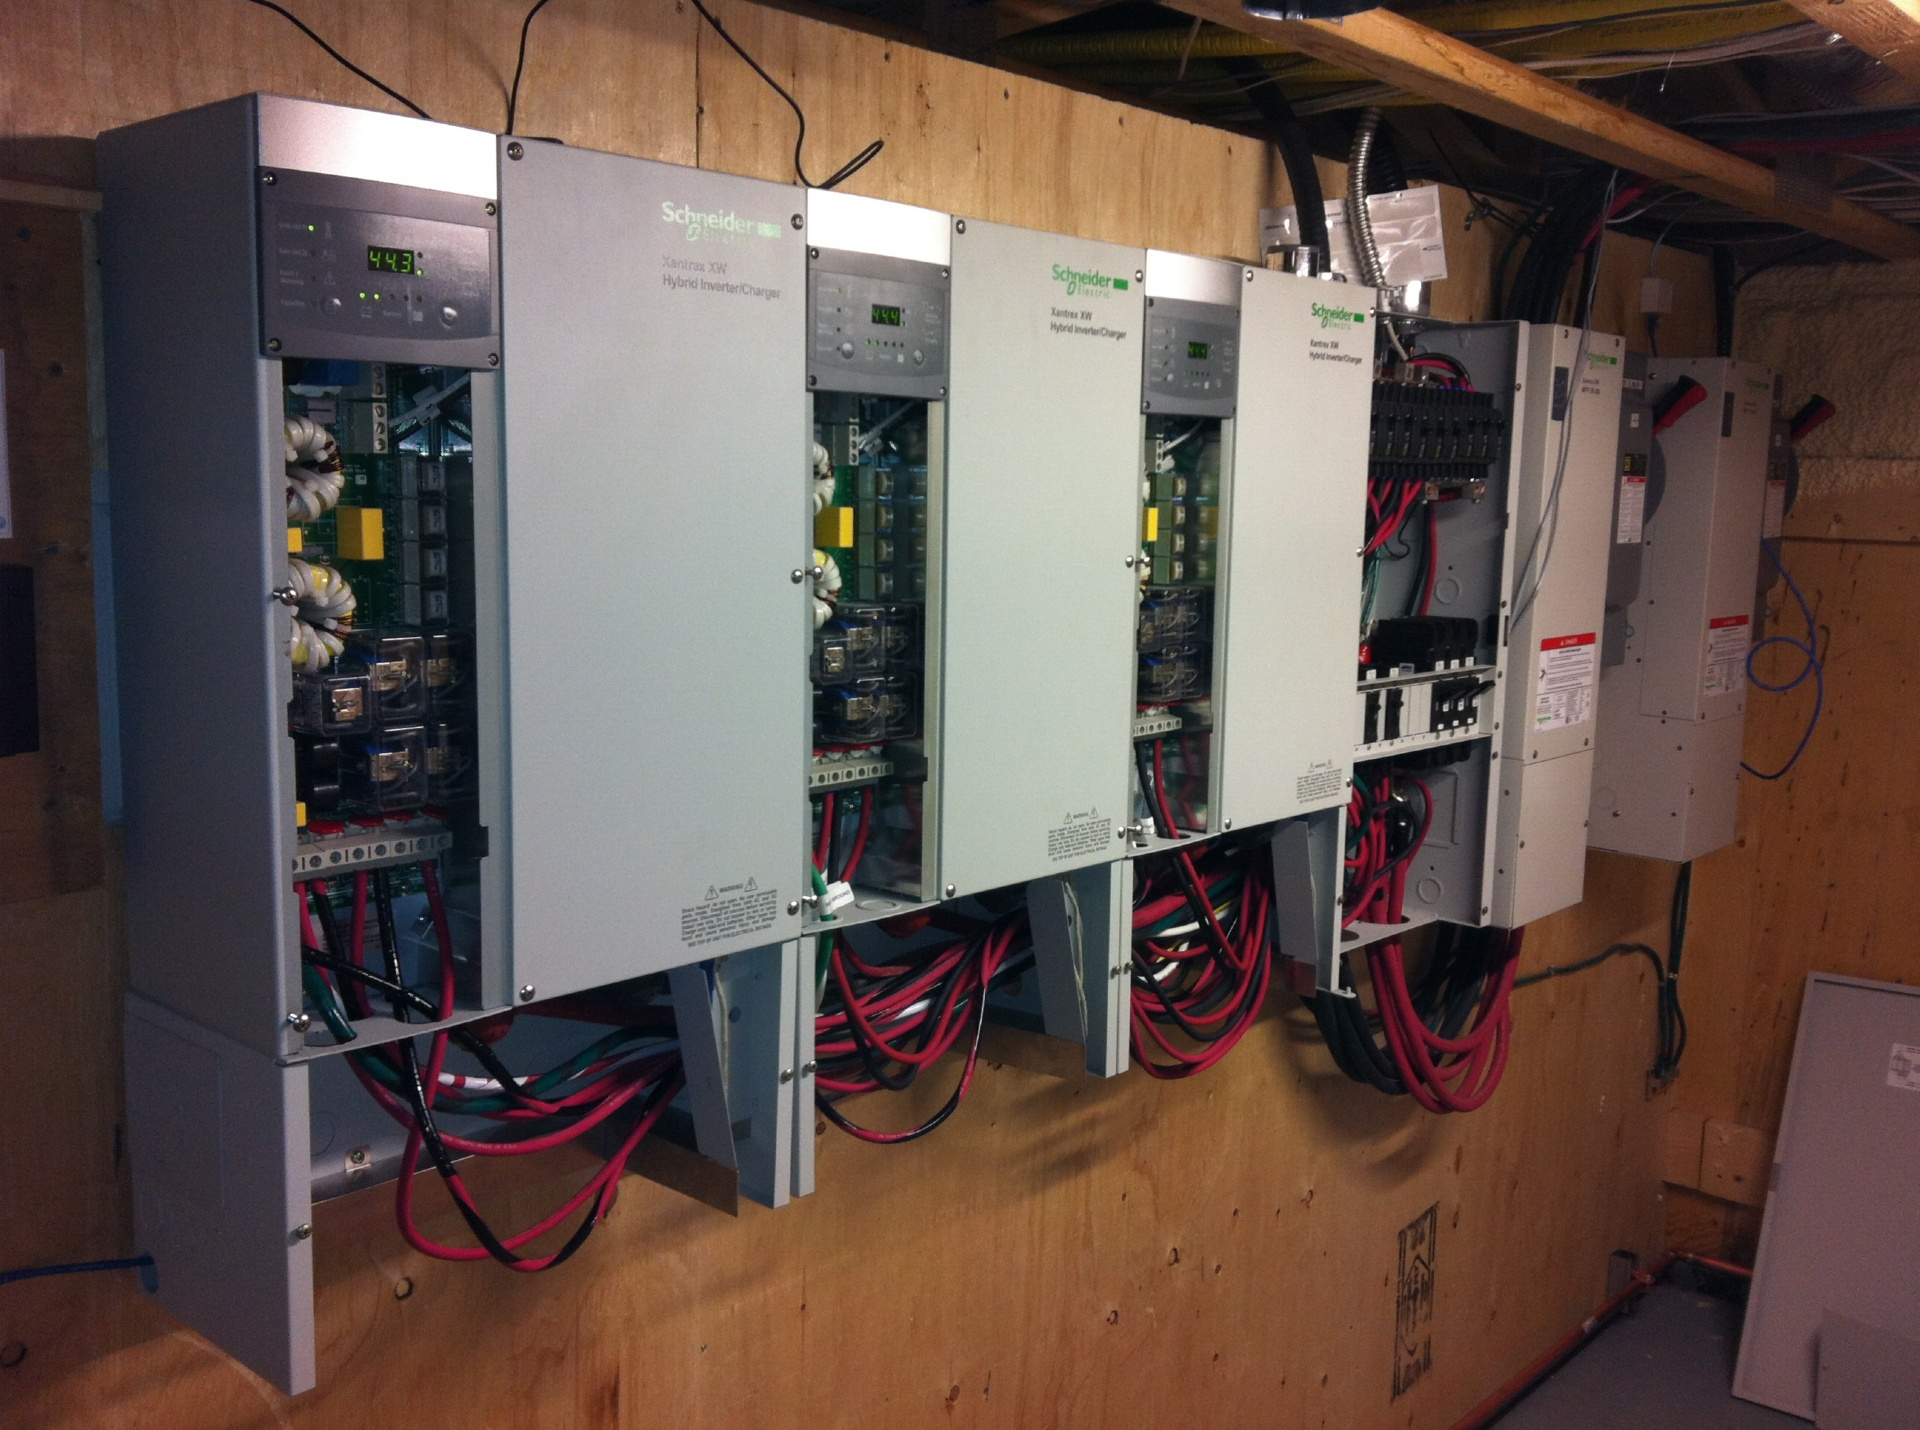 DRYCORE ELECTRIC QUEBEC | Montreal Electrical Contractor | Electrical contractors providing Commercial electrical, Industrial  electrical and Residential electrical services in the Montreal, Laval and surrounding areas.